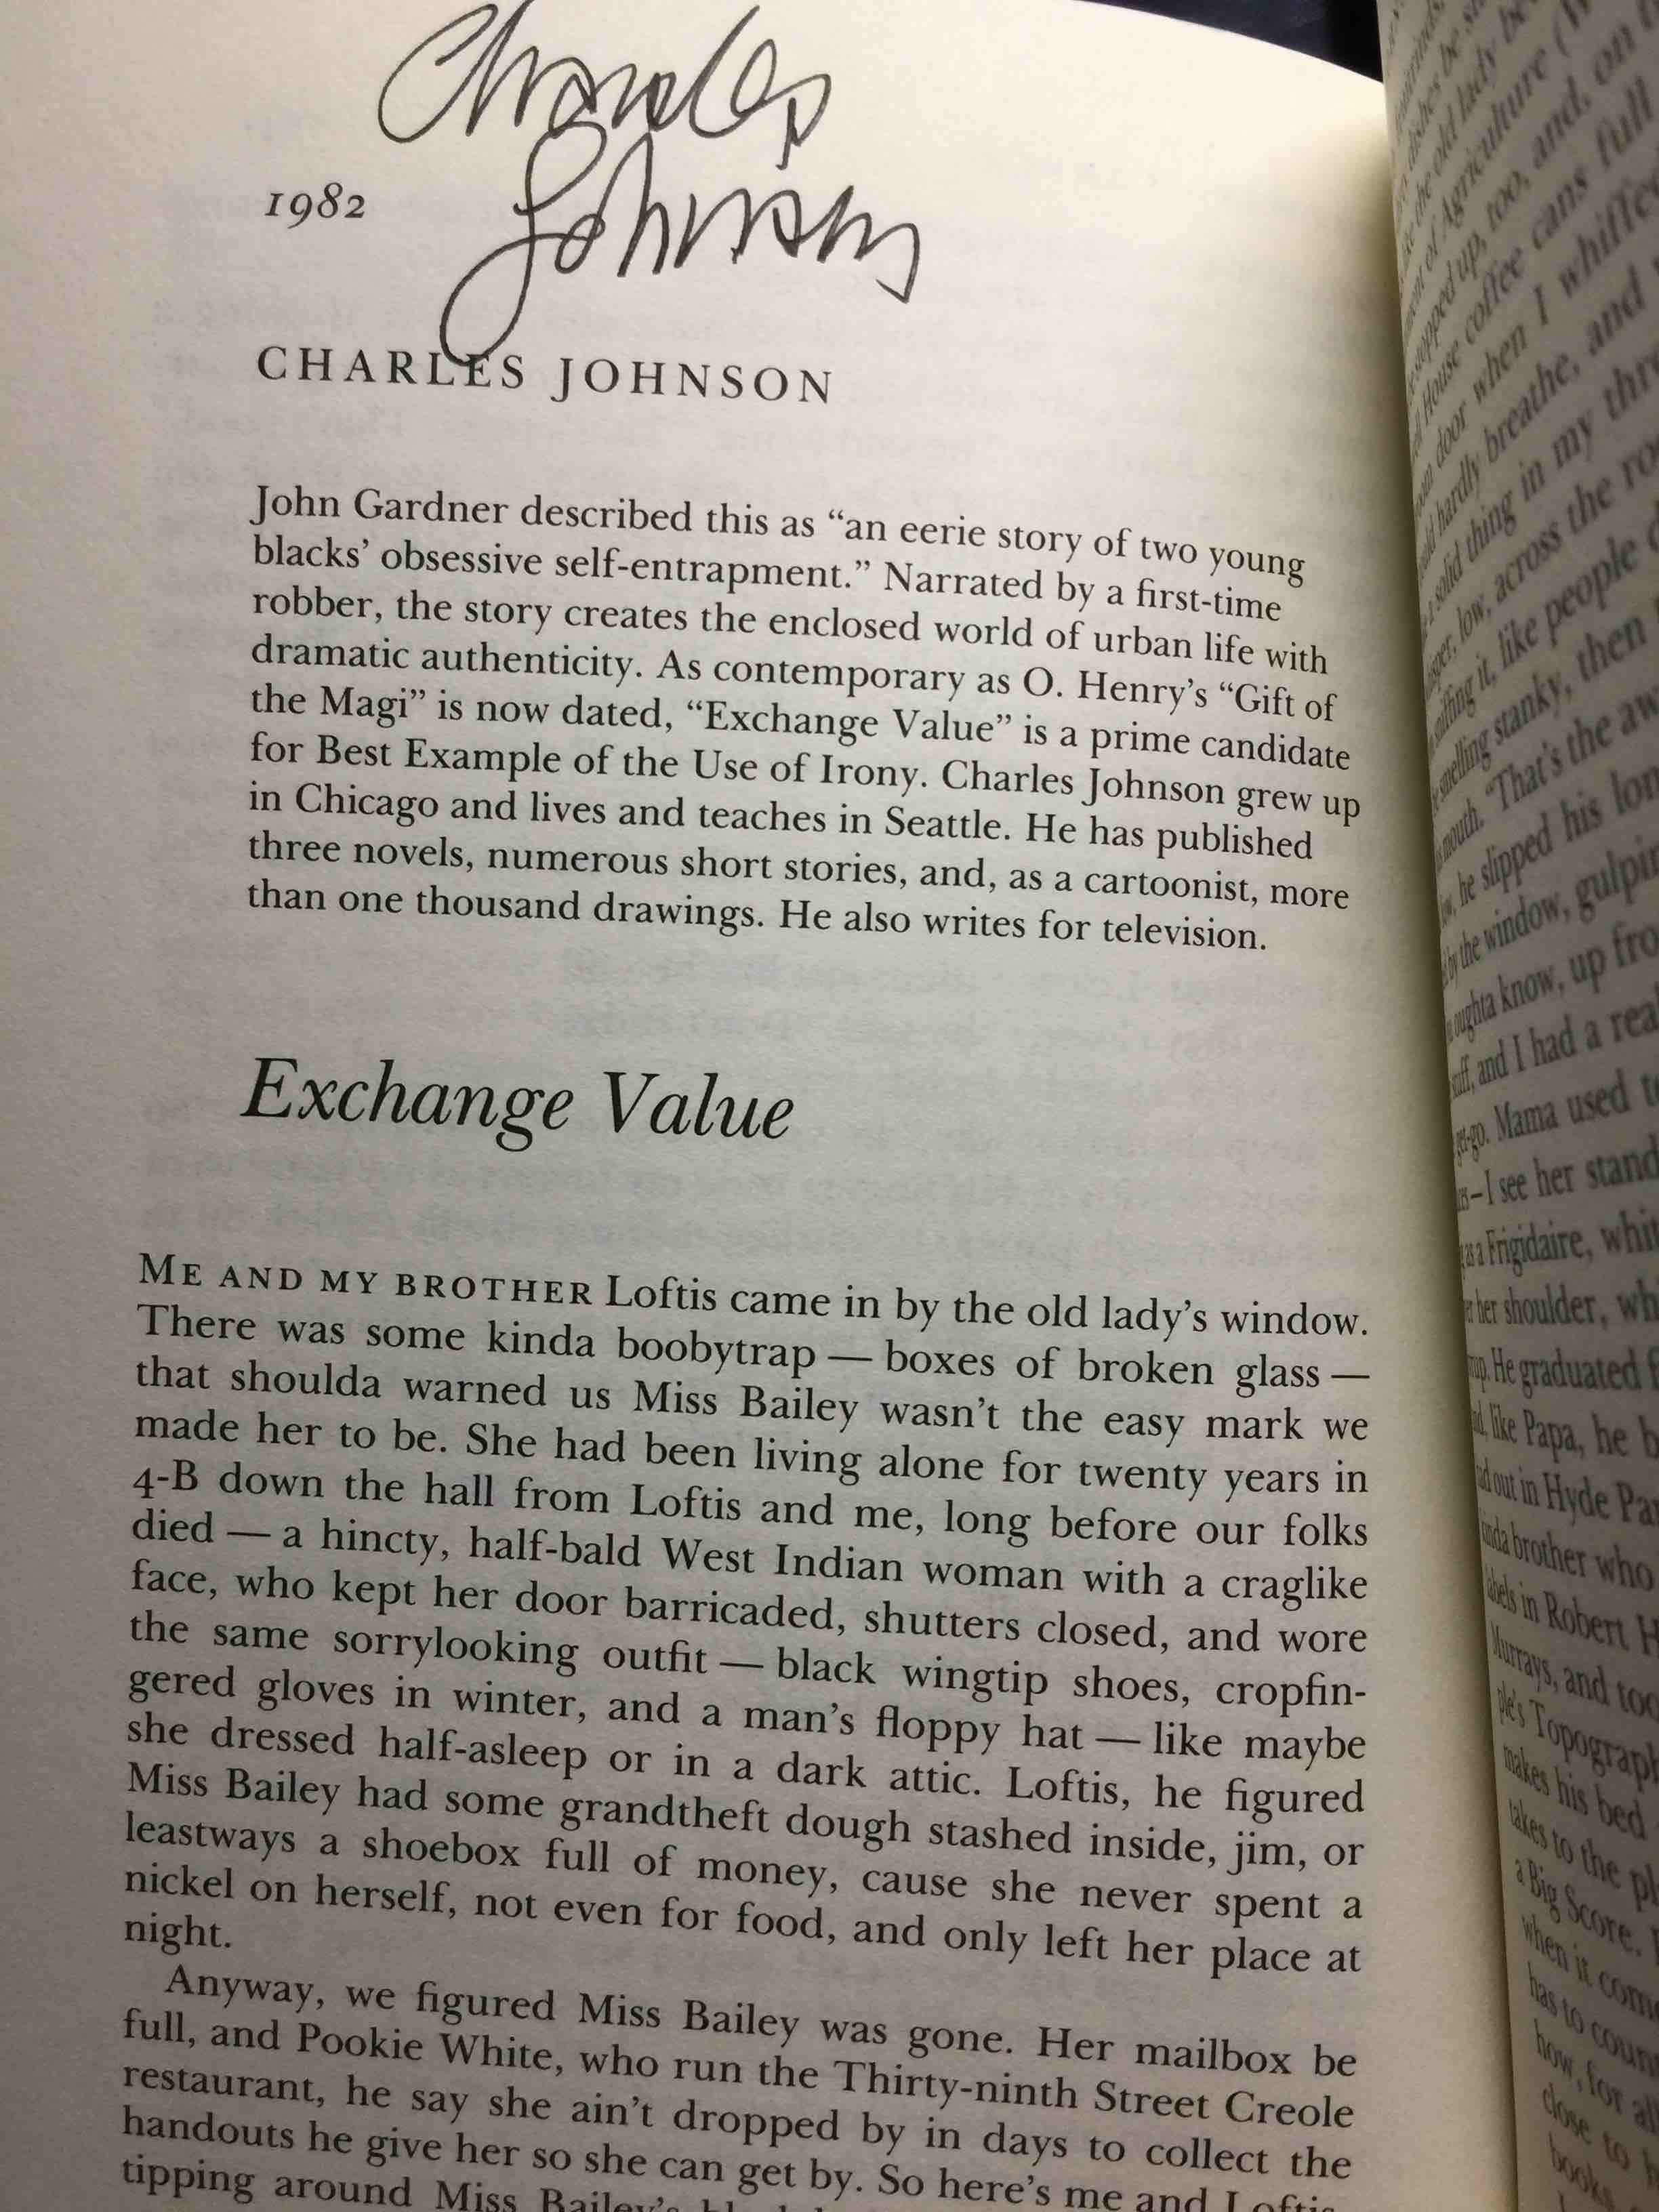 [ANTHOLOGY, SIGNED] SHANNON RAVENEL,  EDITOR. CHARLES JOHNSON, SIGNED. - THE BEST AMERICAN SHORT STORIES OF THE EIGHTIES.